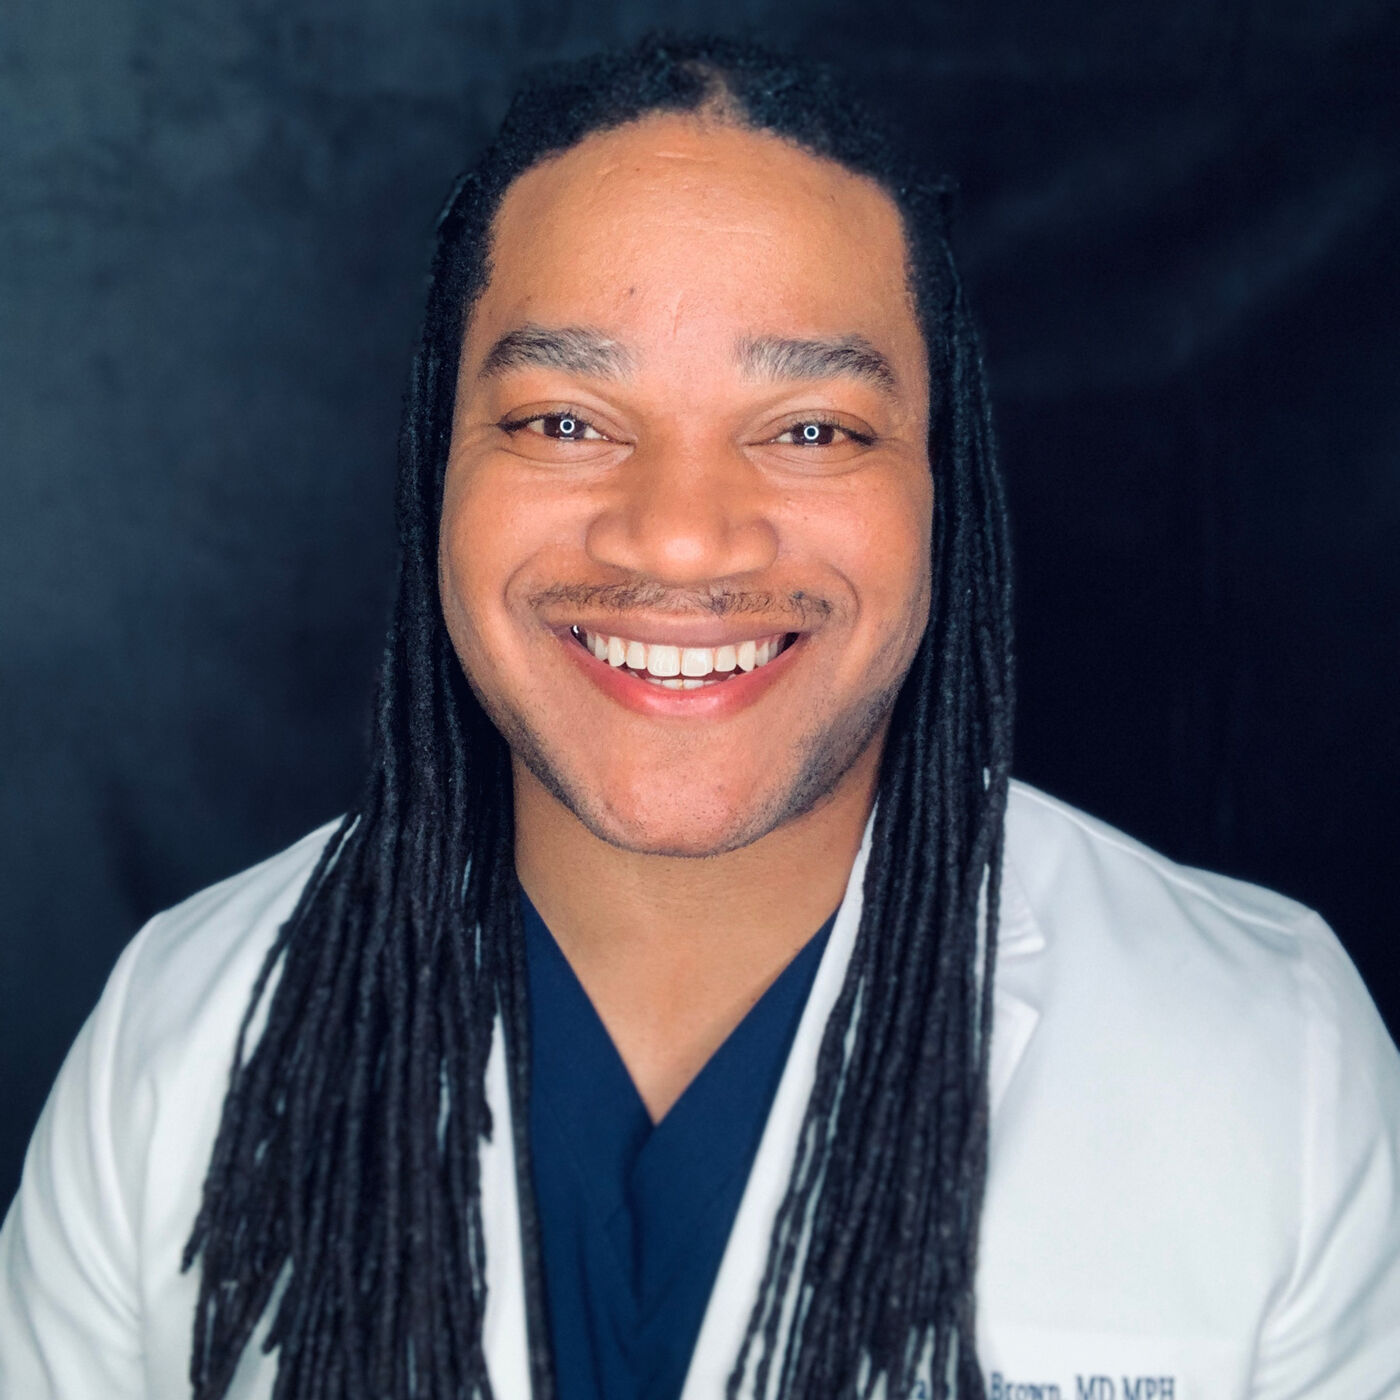 #11 - The Intersection of Social Emergency Medicine, Black Lives Matters and COVID-19 with Dr. Italo Brown